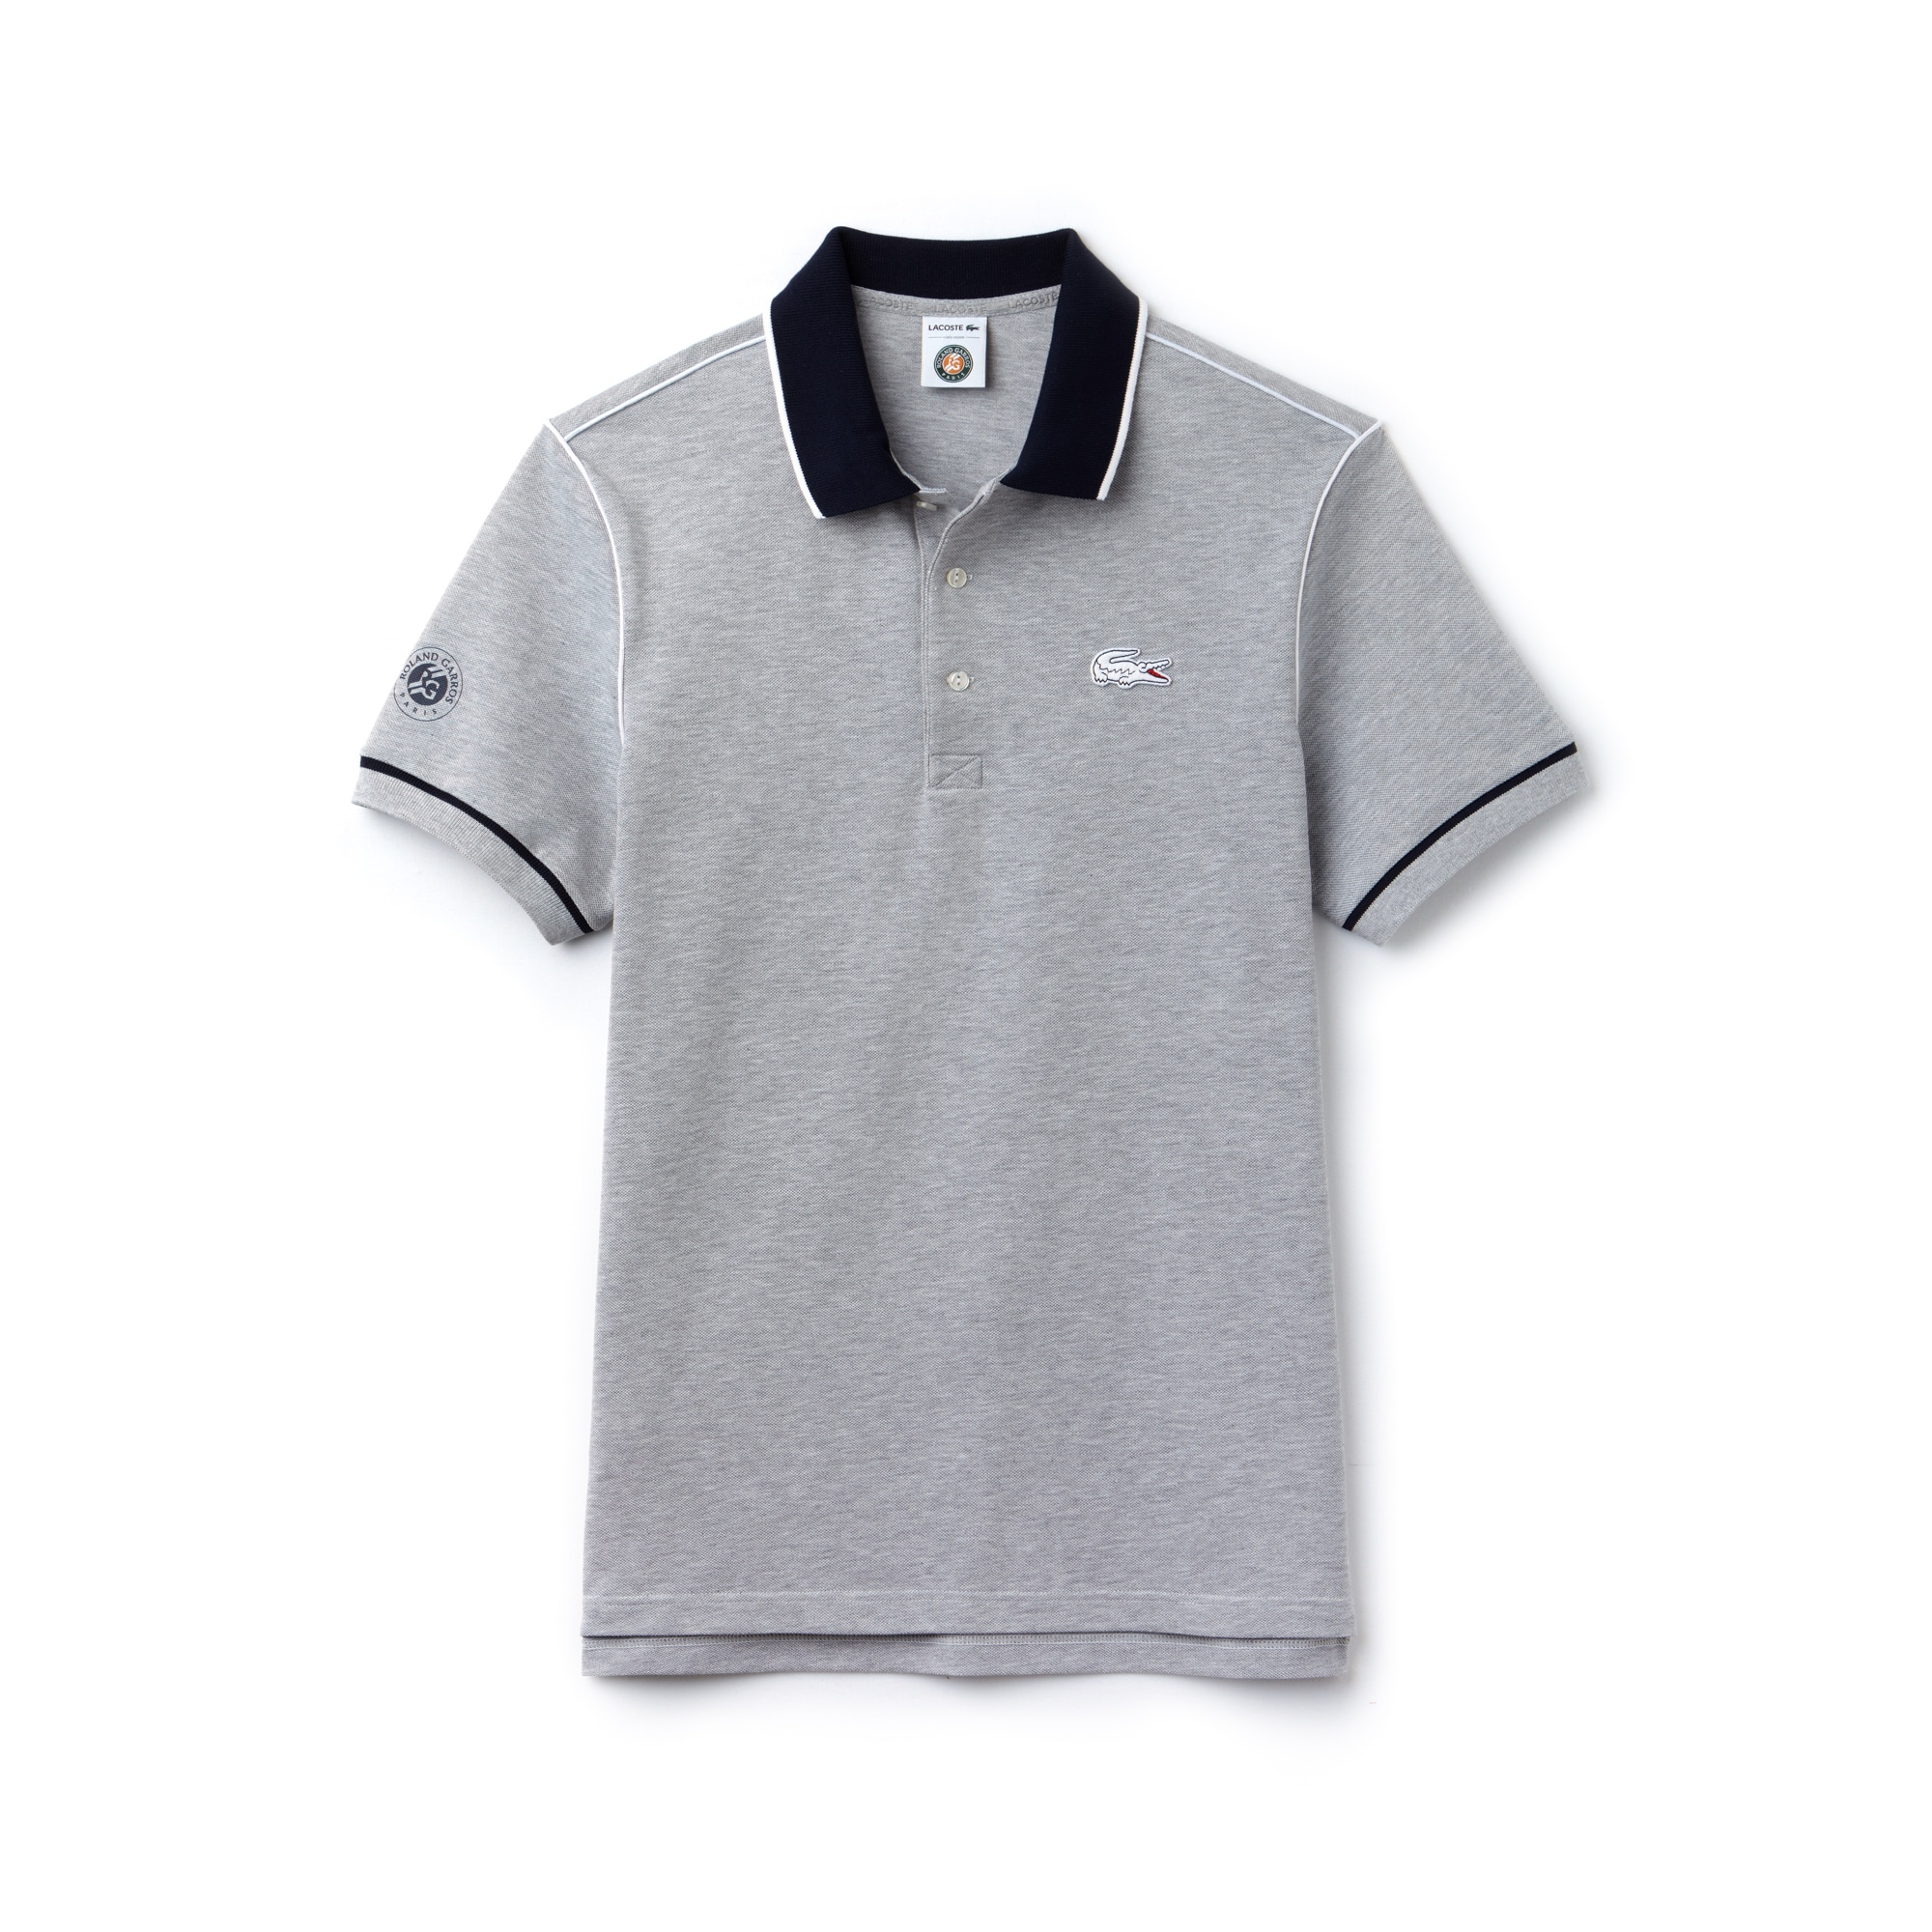 Men's SPORT Roland Garros Edition Piped Piqué Polo